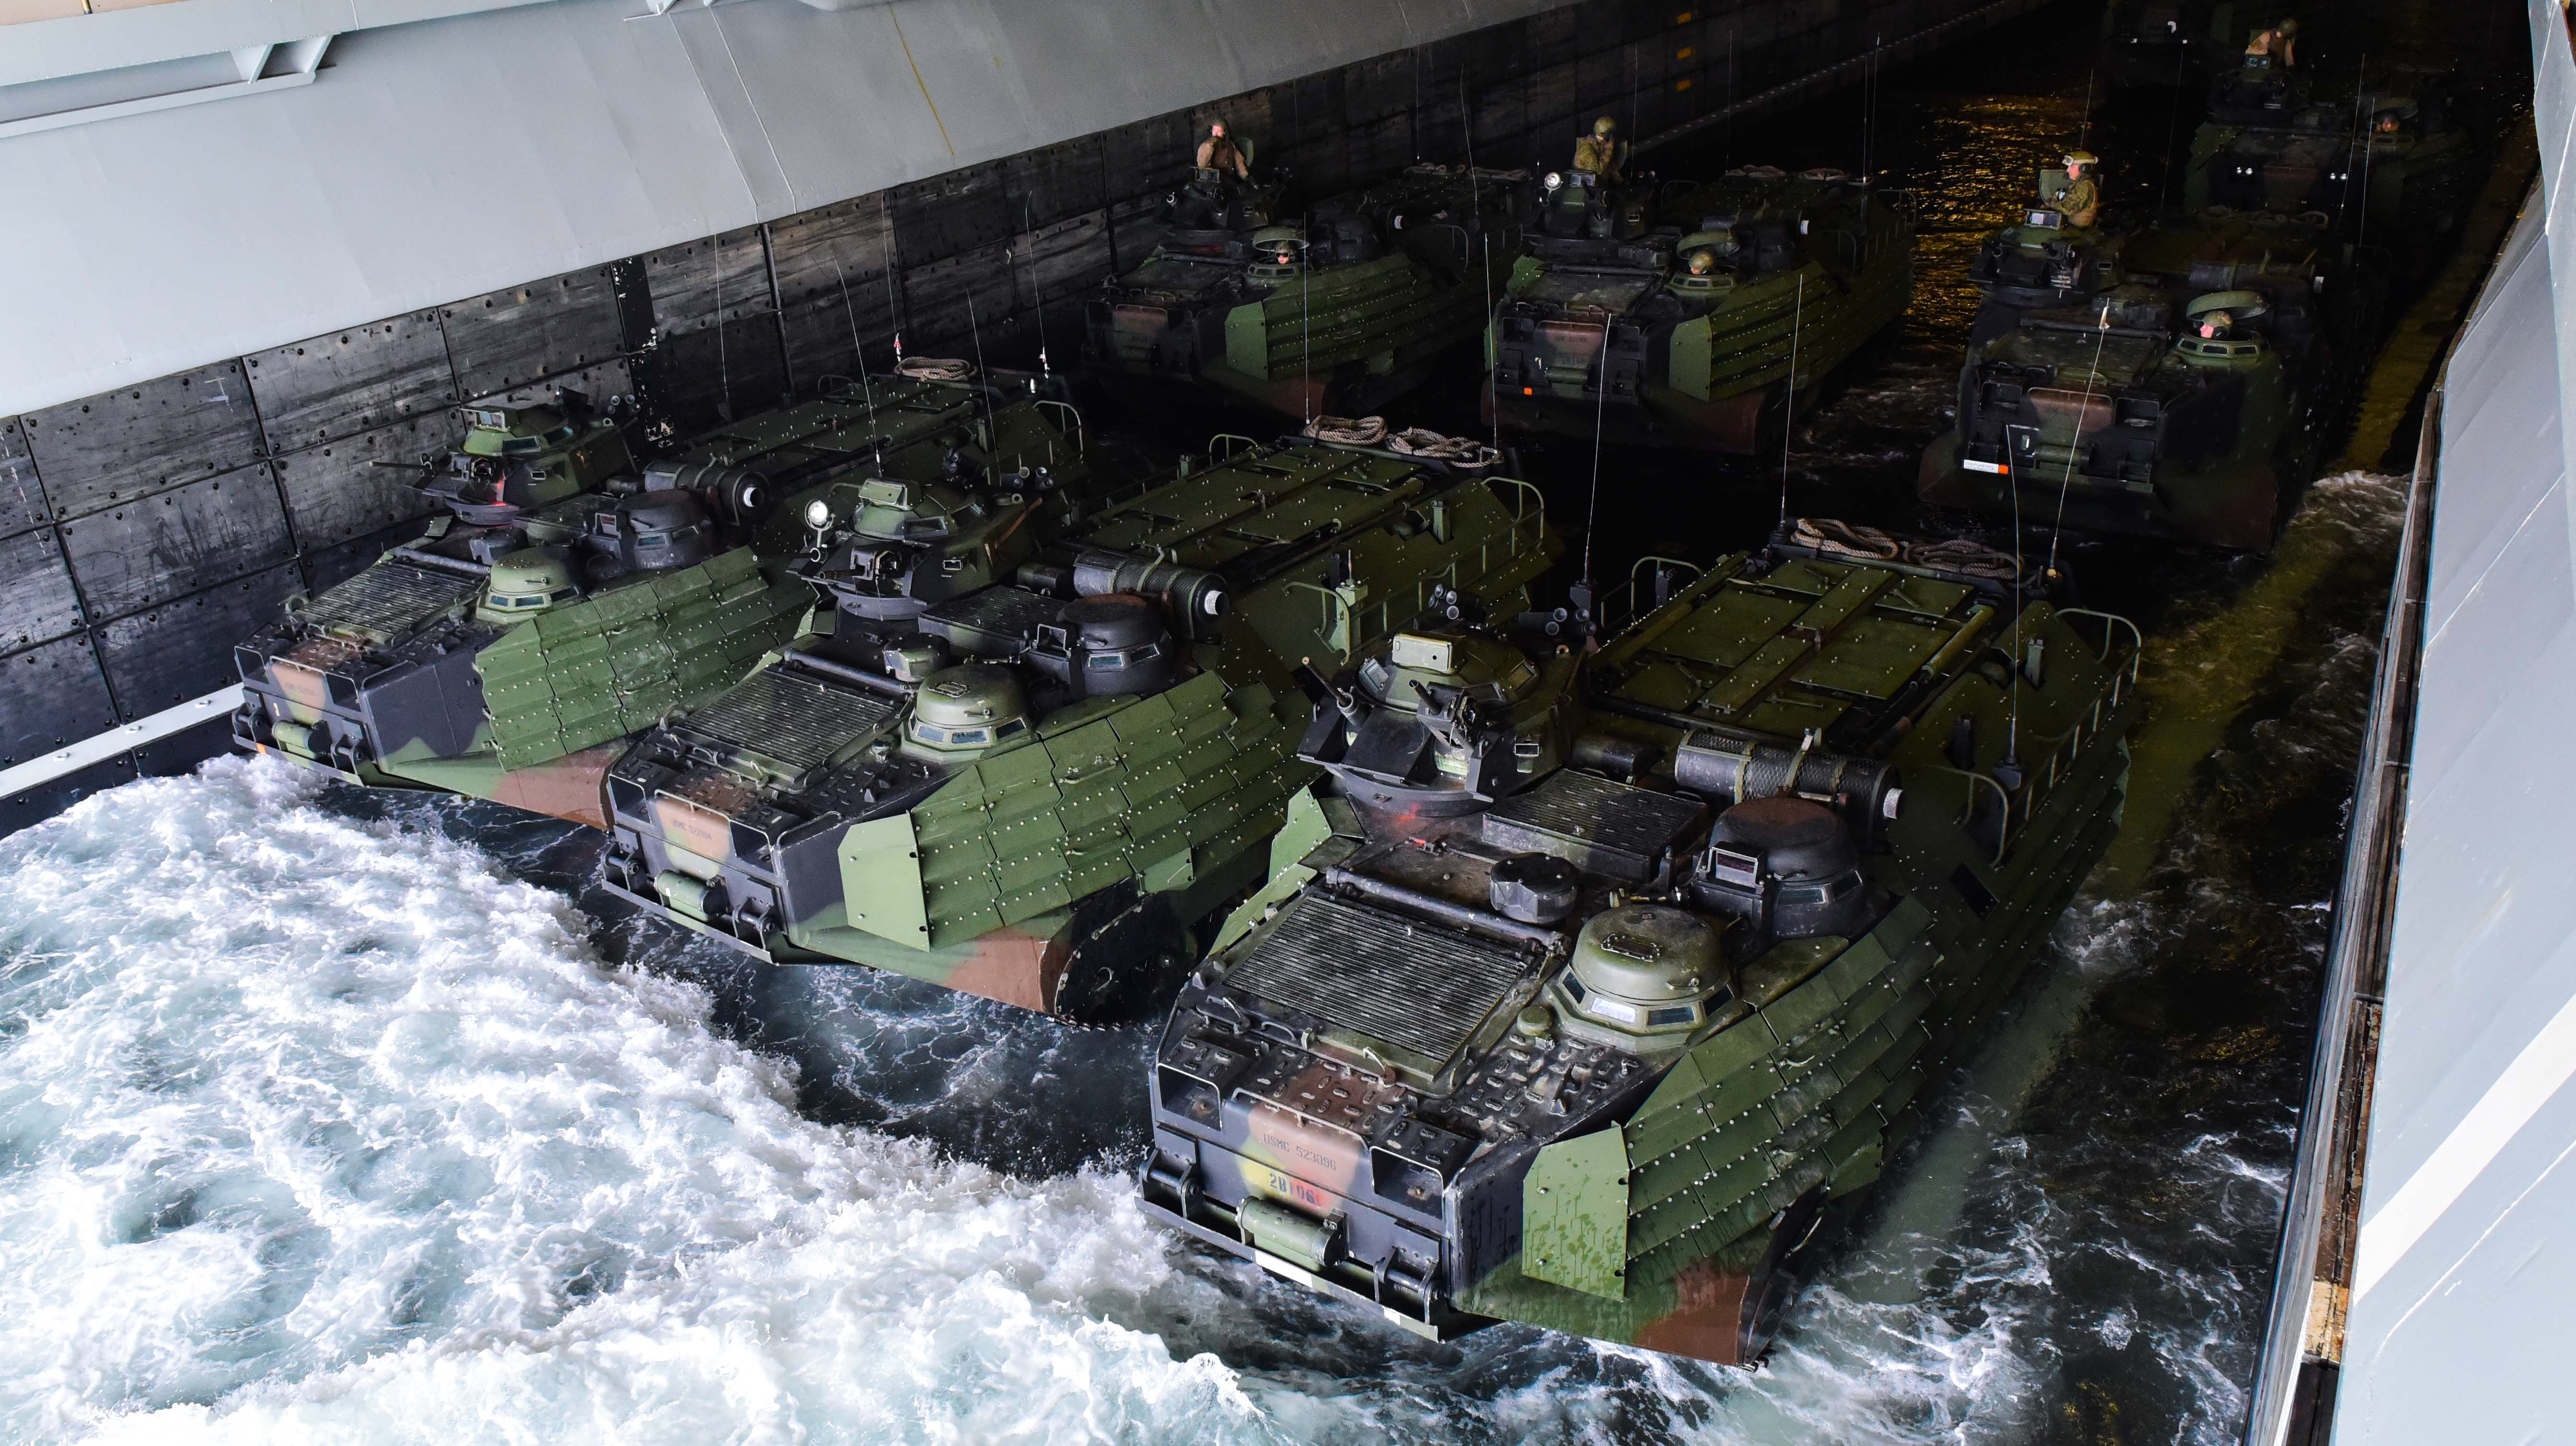 U.S. Marines prepare to depart the amphibious assault ship USS Bataan (LHD 5) in amphibious assault vehicles (AAV) in April 2016. US Navy photo.